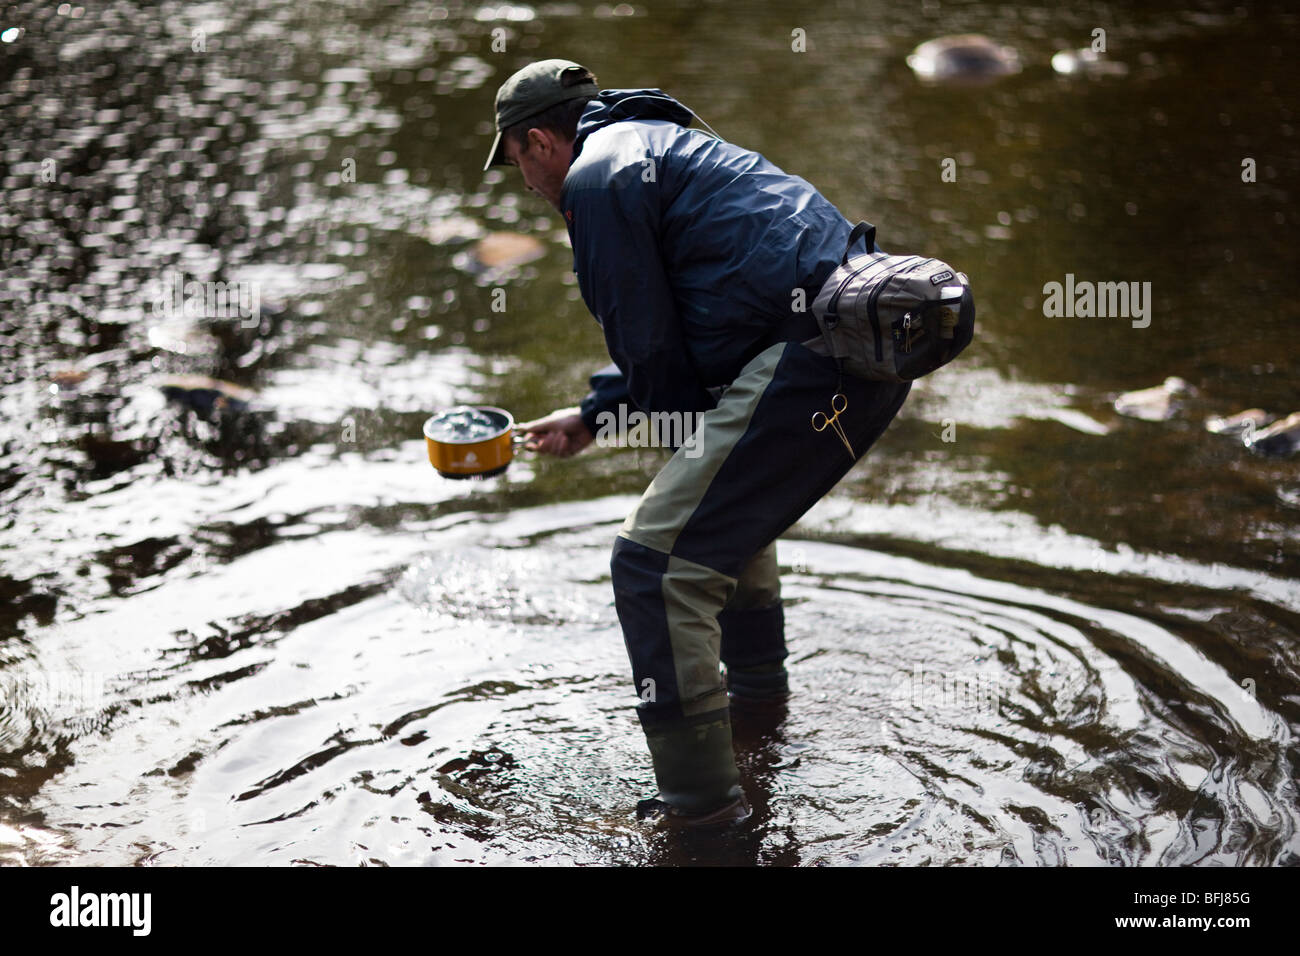 A fly-fishing man with a cooking-utensil, Sweden. - Stock Image